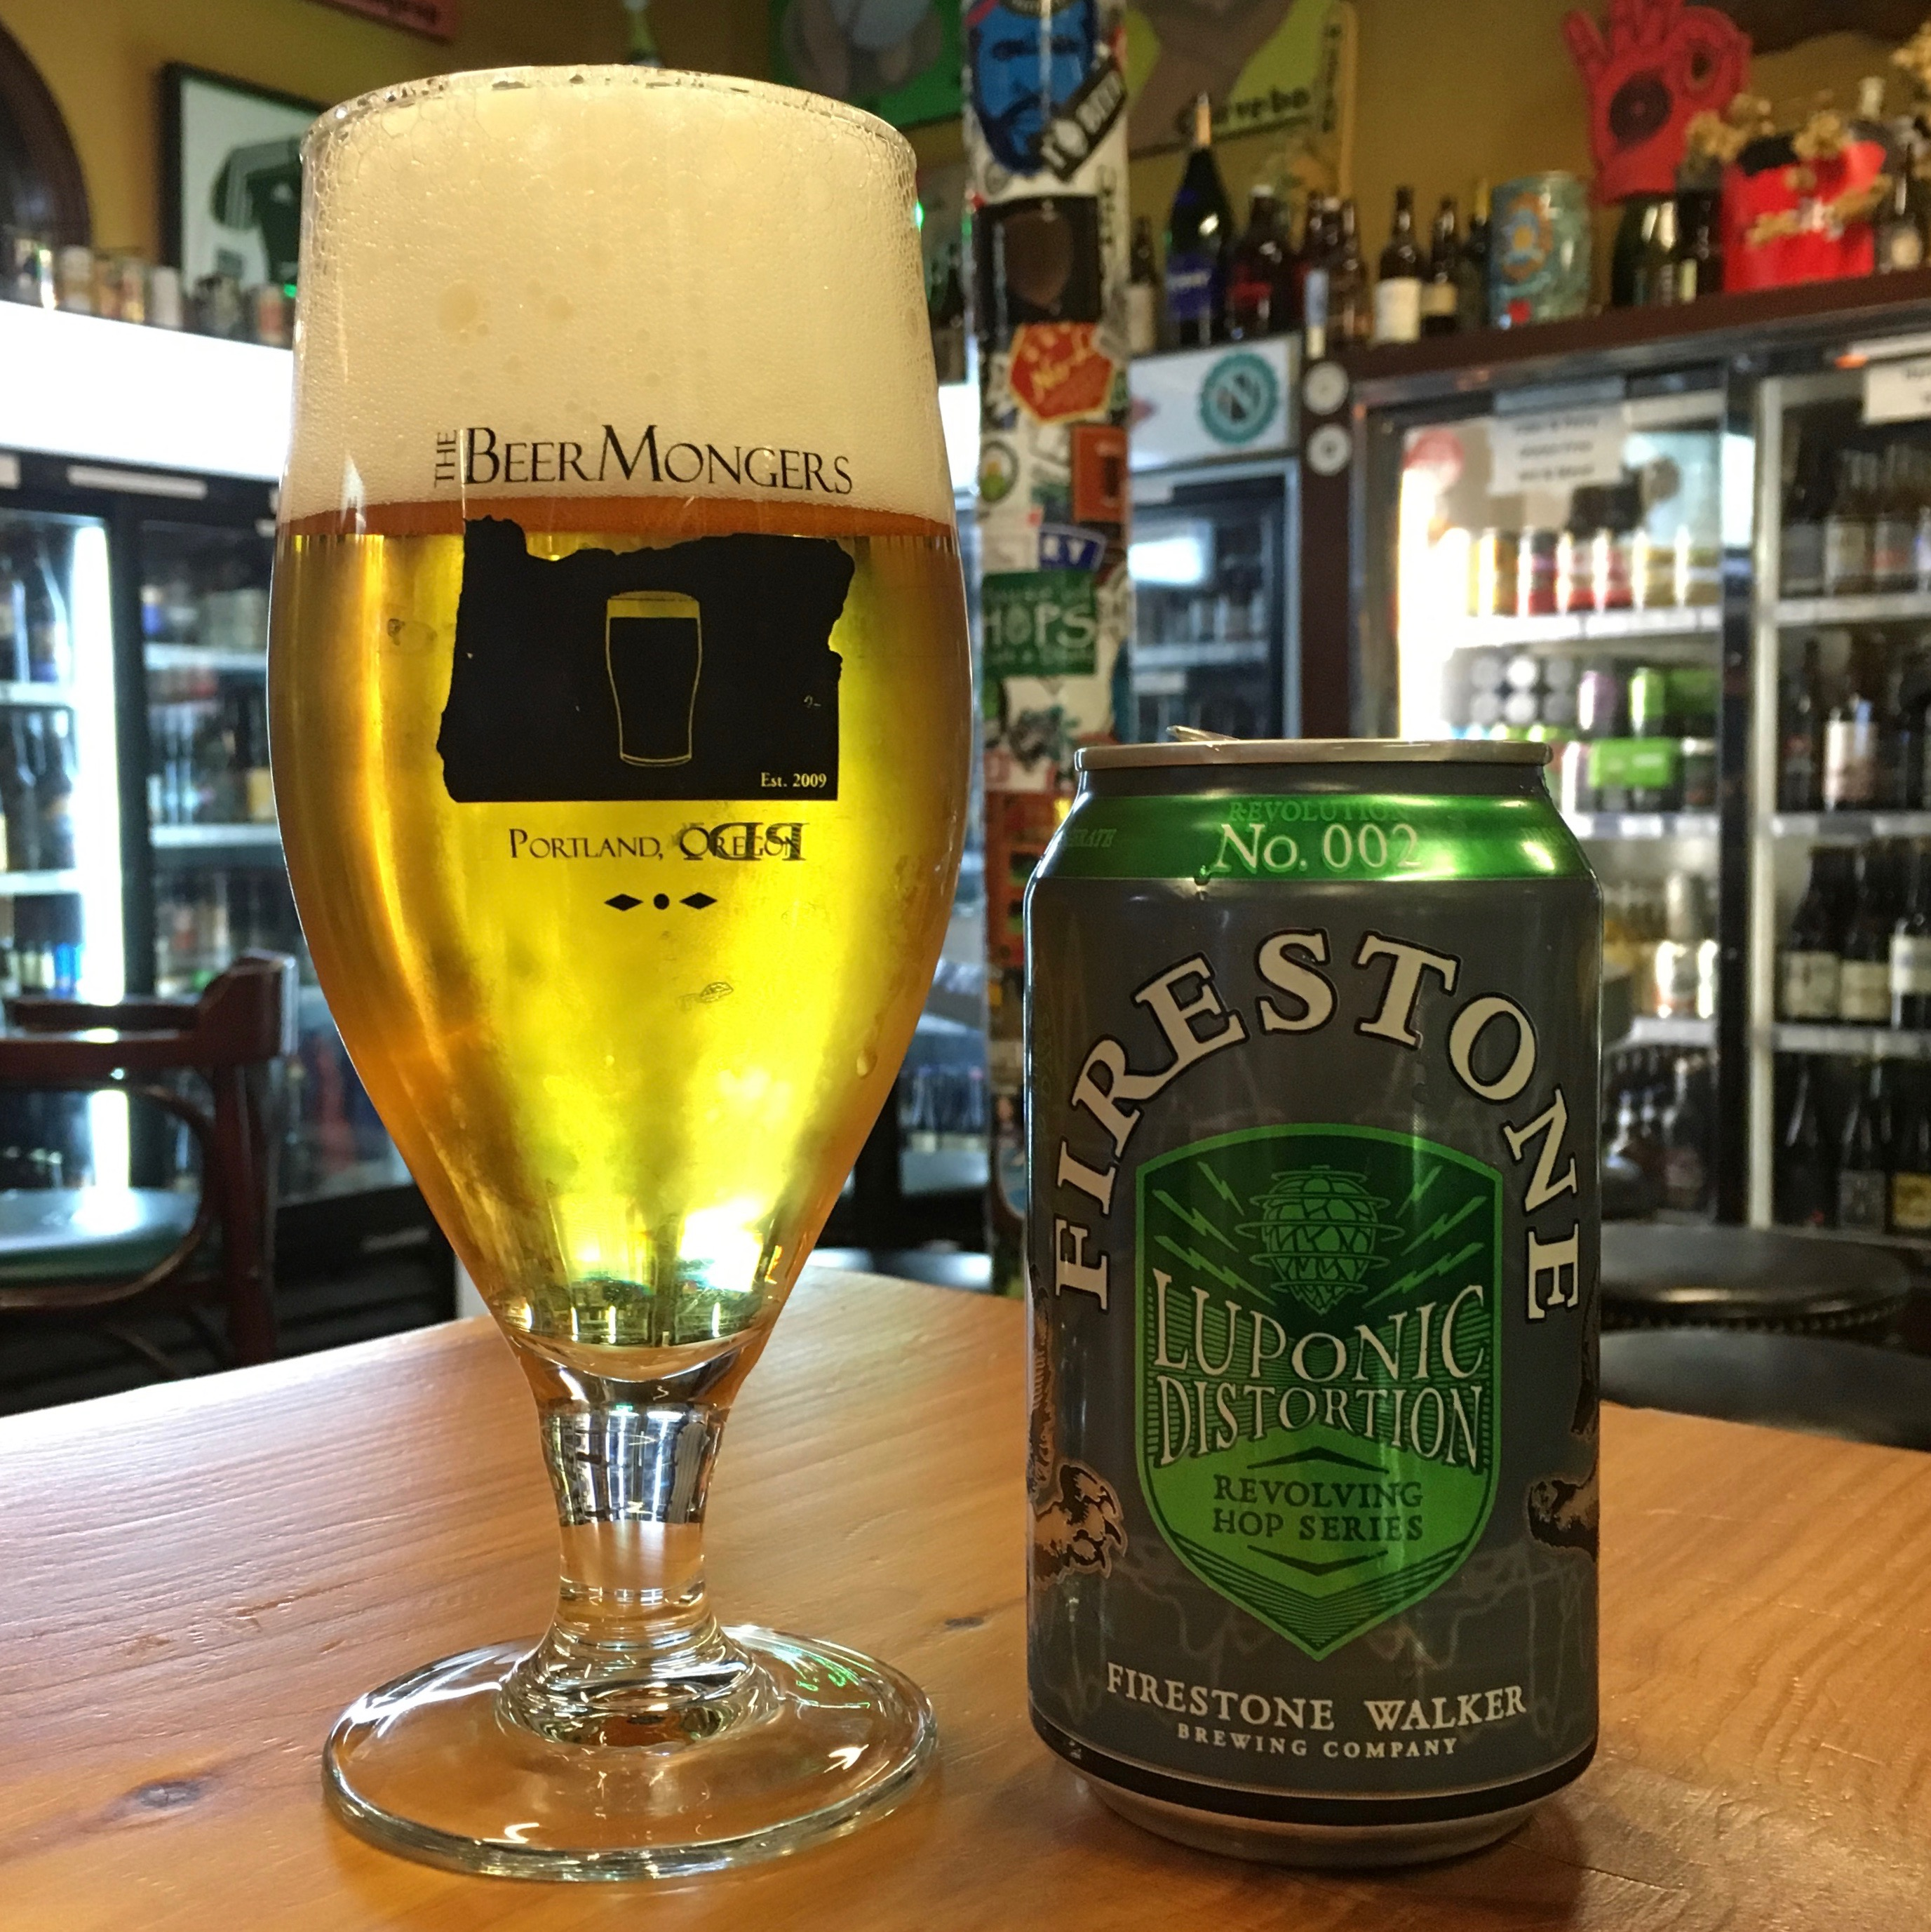 Firestone Walker Luponic Distortion No.002 at The BeerMongers direct from the 12 oz. can.